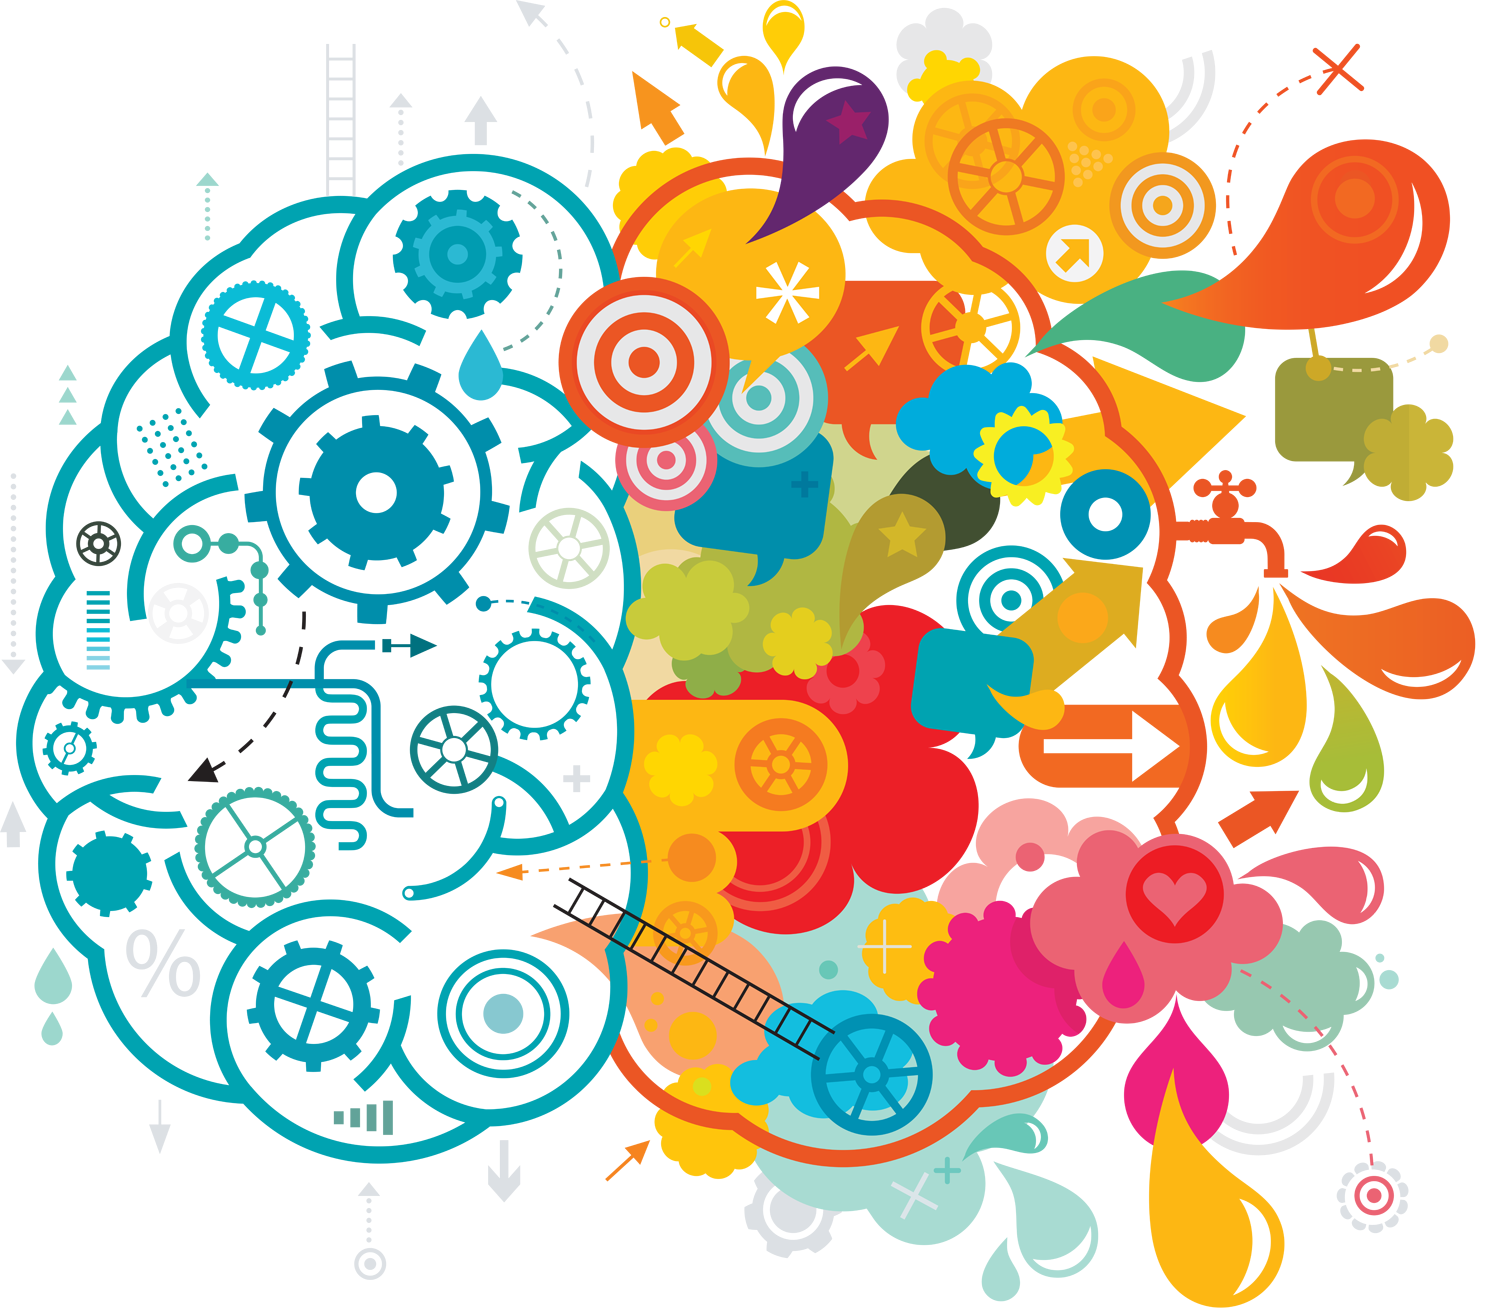 creativity and creative 4 2 Webinar on mind, thinking & creativity march 9, 2016 at 4 pm gmt (11 am est, 5 pm cet, 9:30 pm ist) to bridge that gap requires a creative response 4.